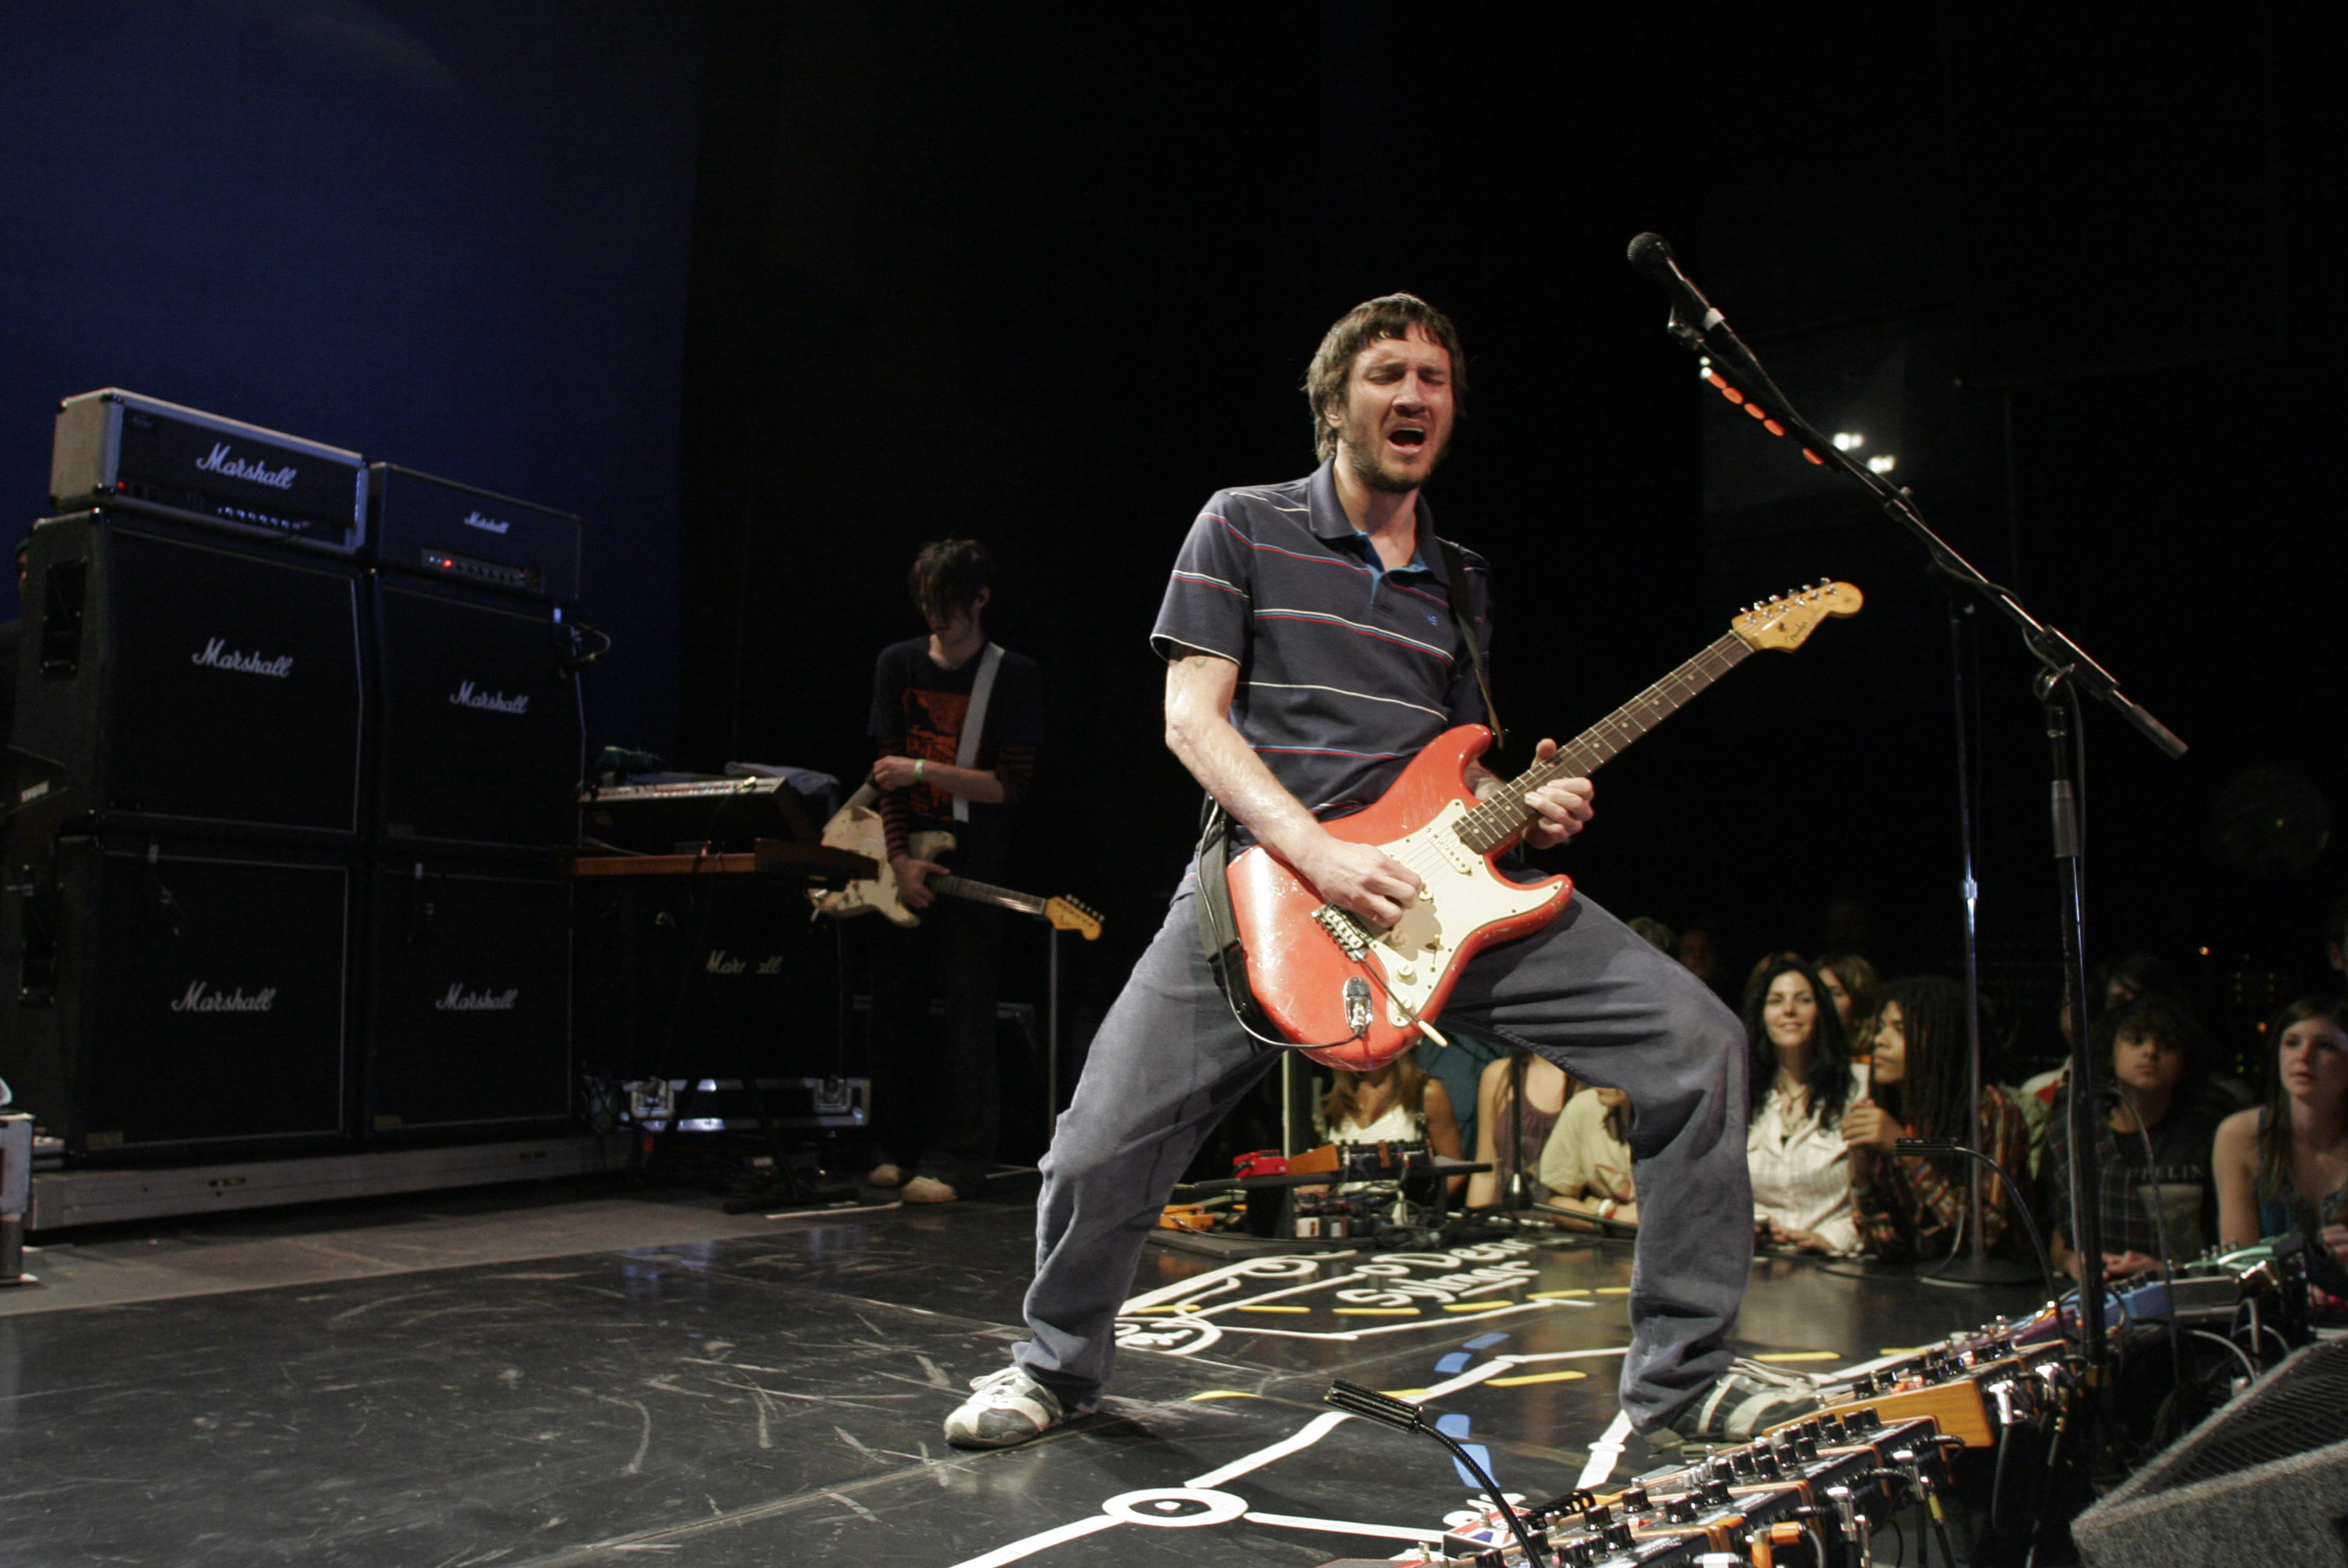 John Frusciante live 2007 – hier noch mit den Red Hot Chili Peppers